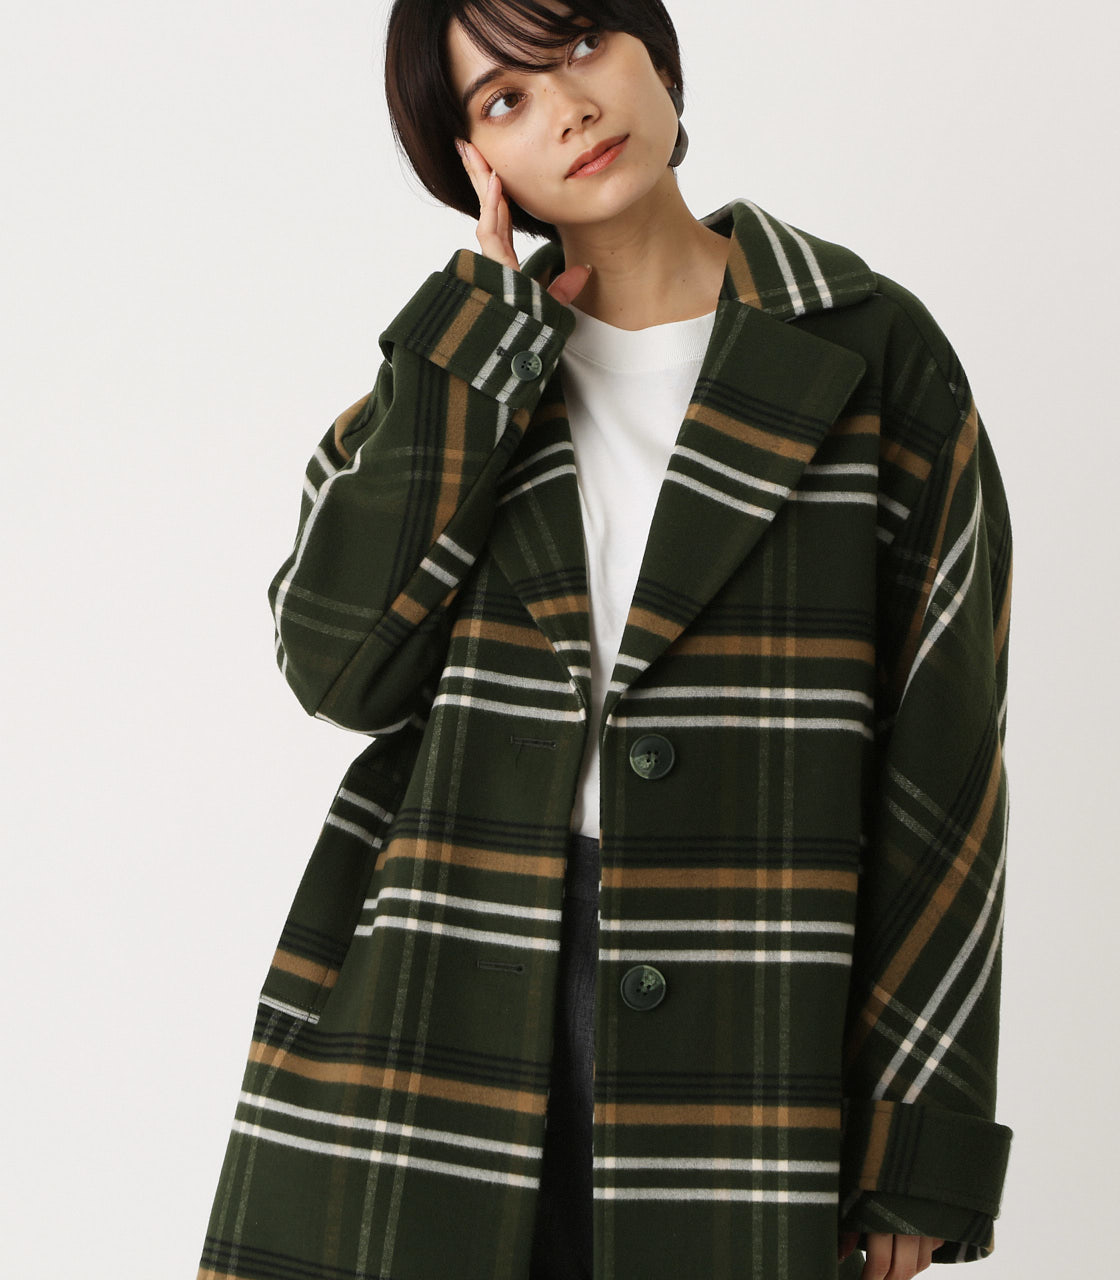 OVER LOOSE CHESTER COAT/オーバールーズチェスターコート 詳細画像 柄GRN 2